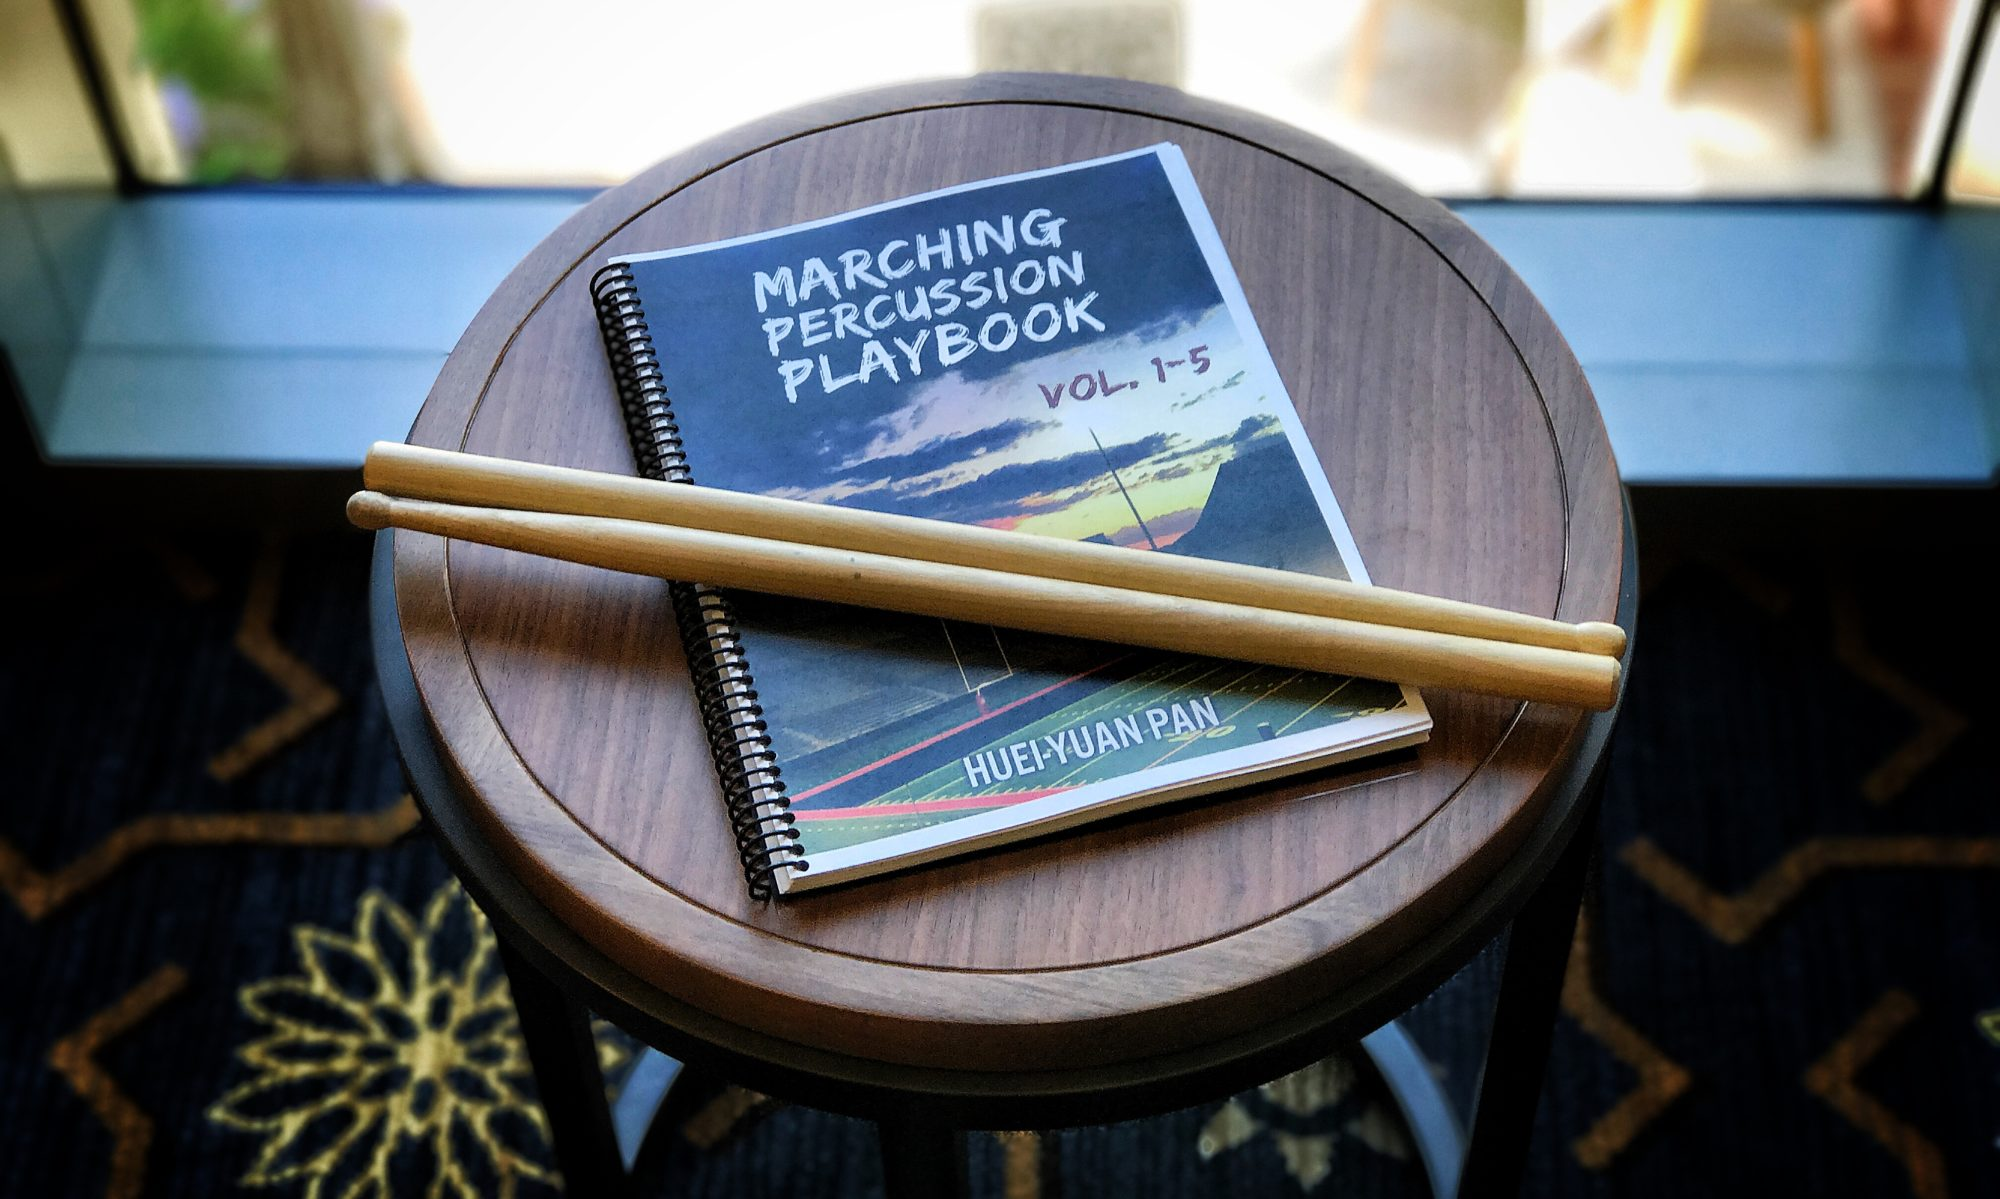 Marching Percussion Playbook